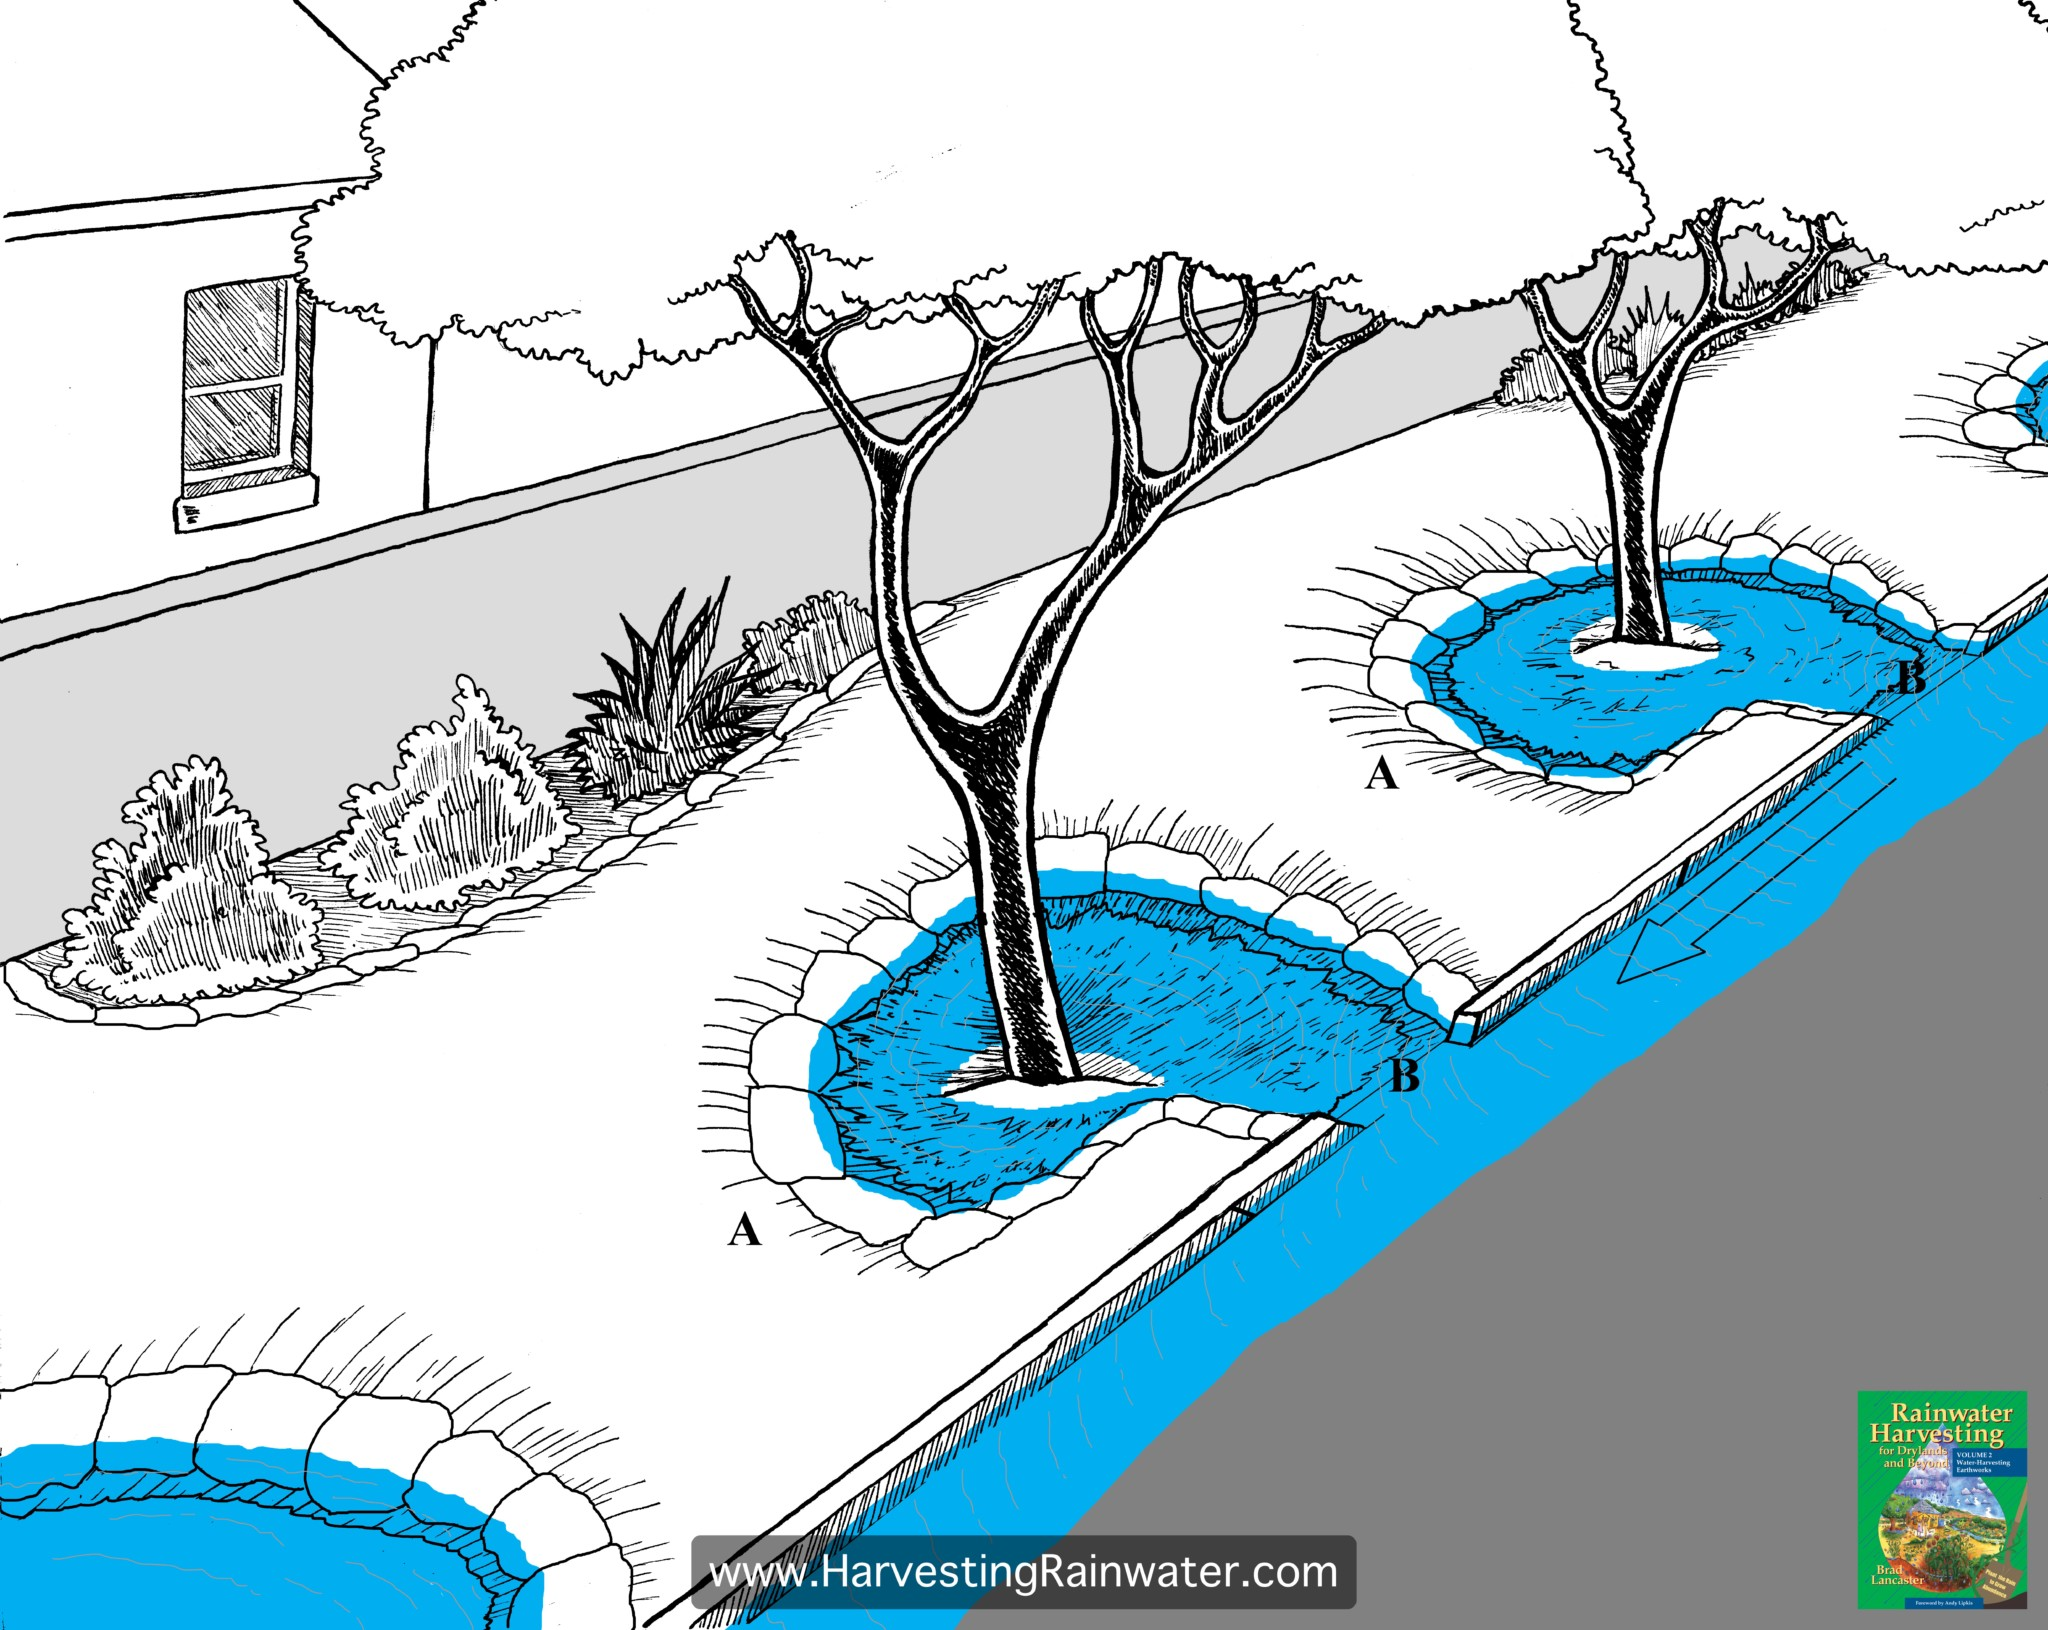 Figure 1. Eddy or backwater basins. The upper edge of the farthest-downstream section of the basin (A) must be higher (ideally at least 4 inches [10 cm] higher) than the basin's curb-cut, or curb-core, inlet (B) to ensure pooling water calmly backs up to the inlet. Arrow denotes water flow.